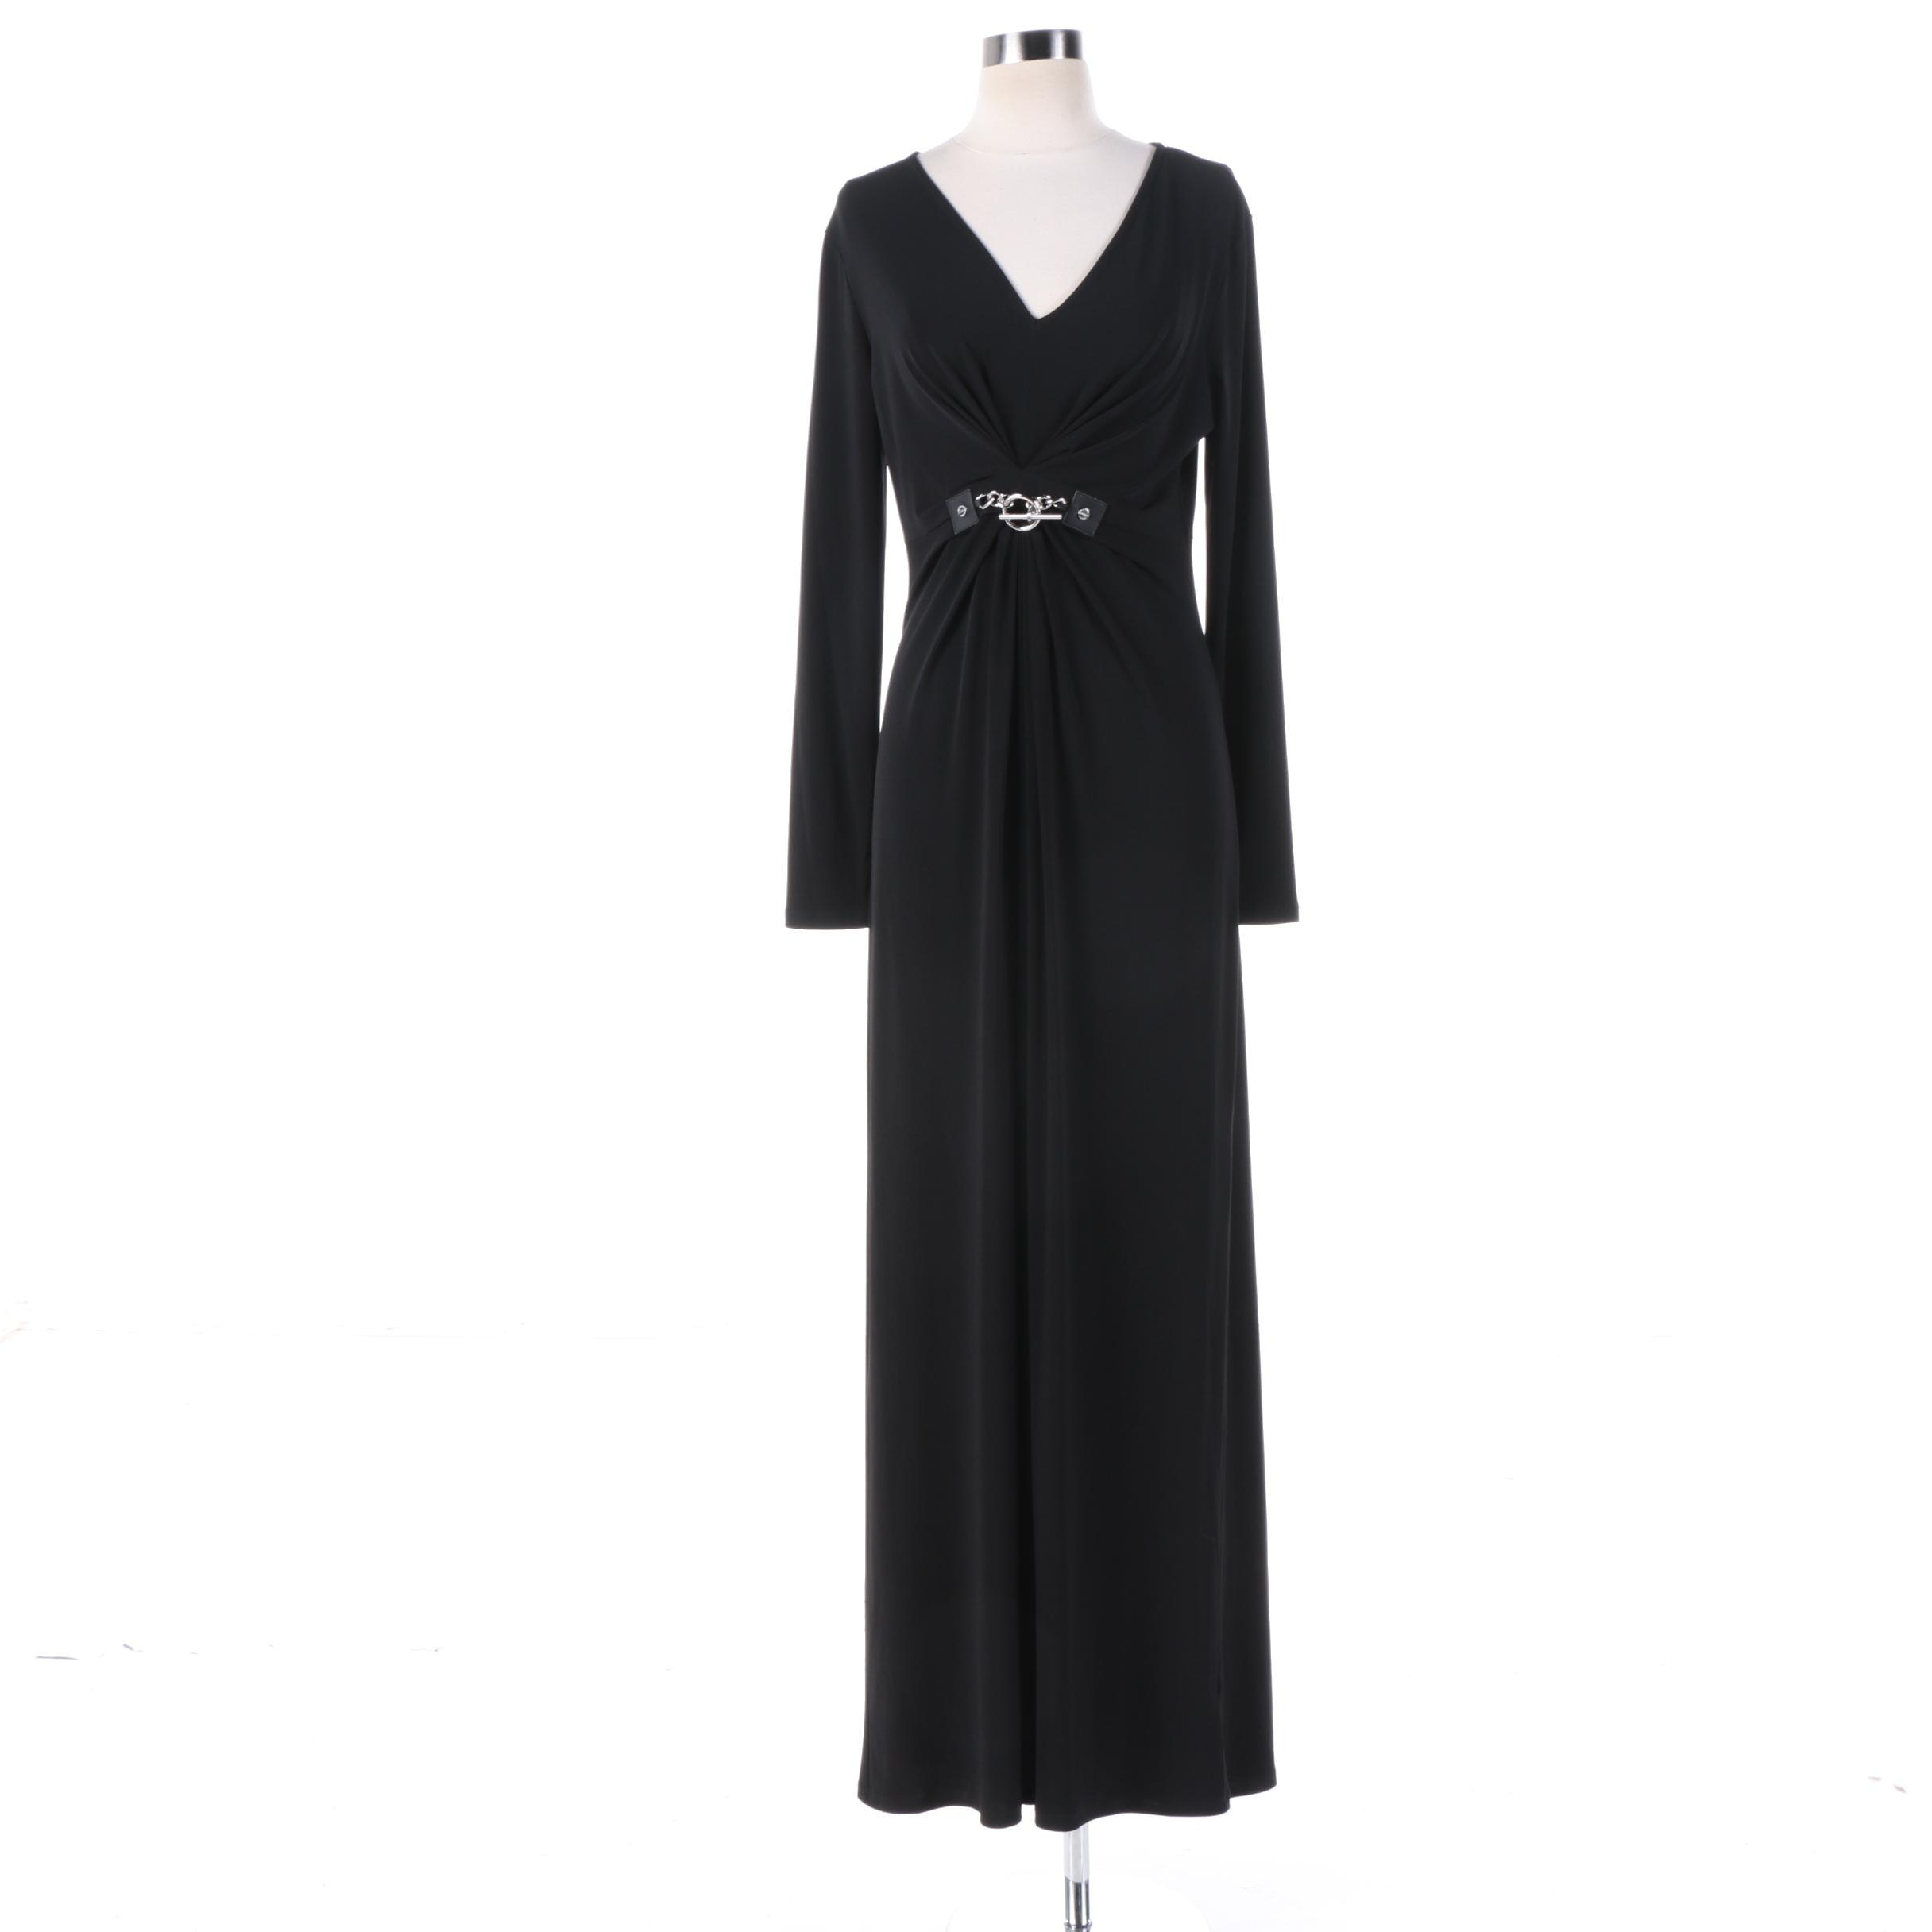 MICHAEL Michael Kors Black Maxi Evening Dress with Belt Detail